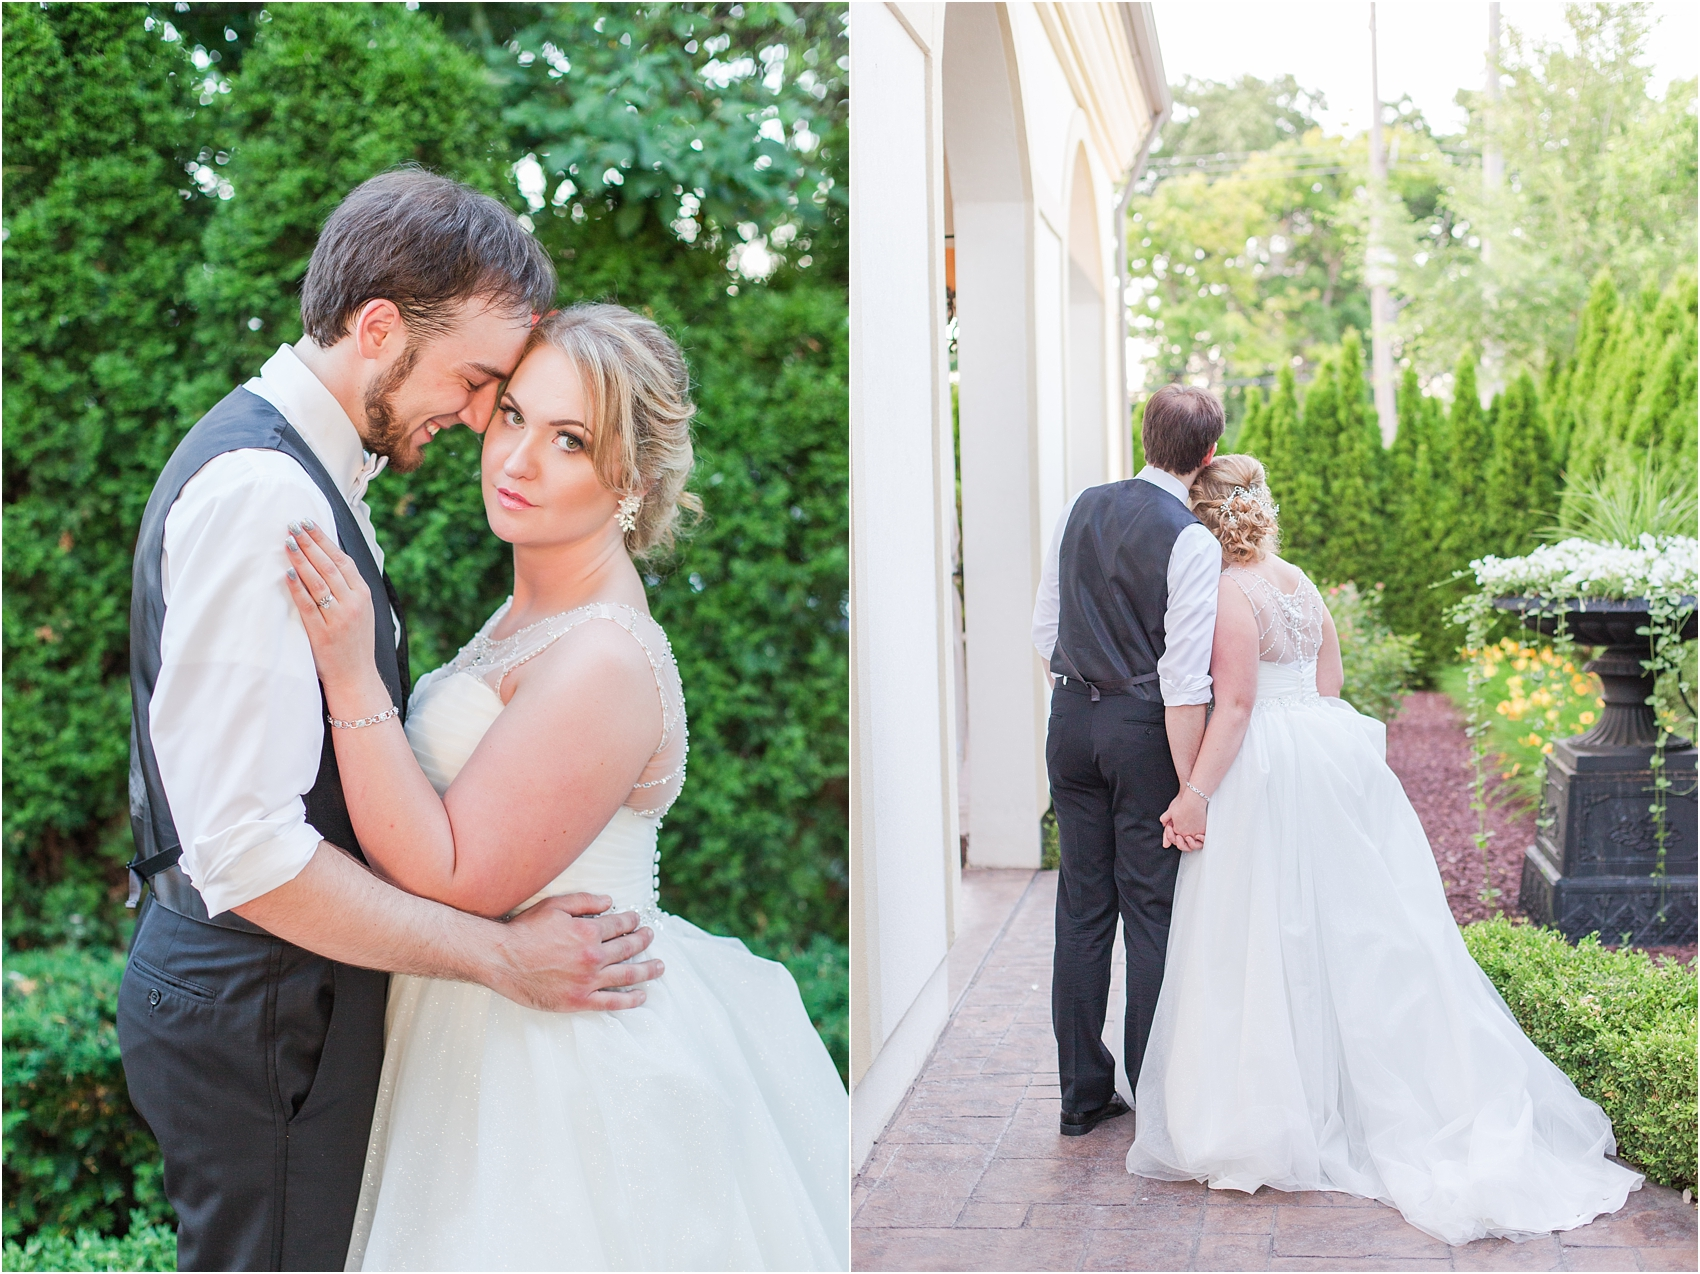 lord-of-the-rings-inspired-wedding-photos-at-crystal-gardens-in-howell-mi-by-courtney-carolyn-photography_0097.jpg